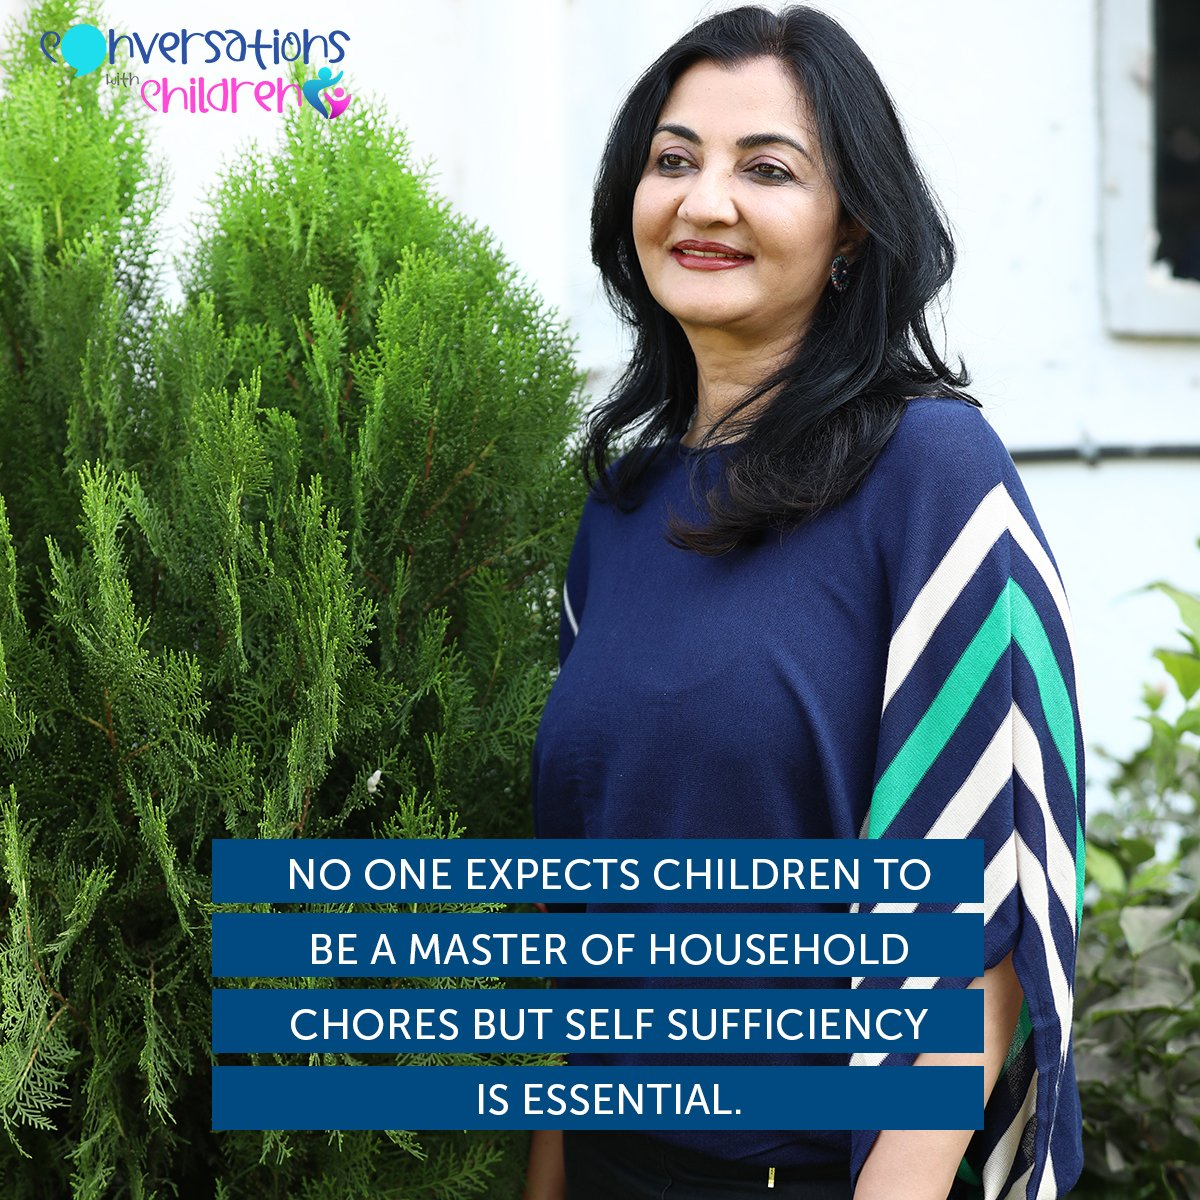 Having children who contribute in household chores is a family elder's delight but ensuring it happens in our own home may seem like a challenge. https://t.co/Z1ajAUulcp  #parenting #children  #onlinecourse #newparents #newmom #understandingkids #toddlerlife #familygoals https://t.co/lysOcrLSxe